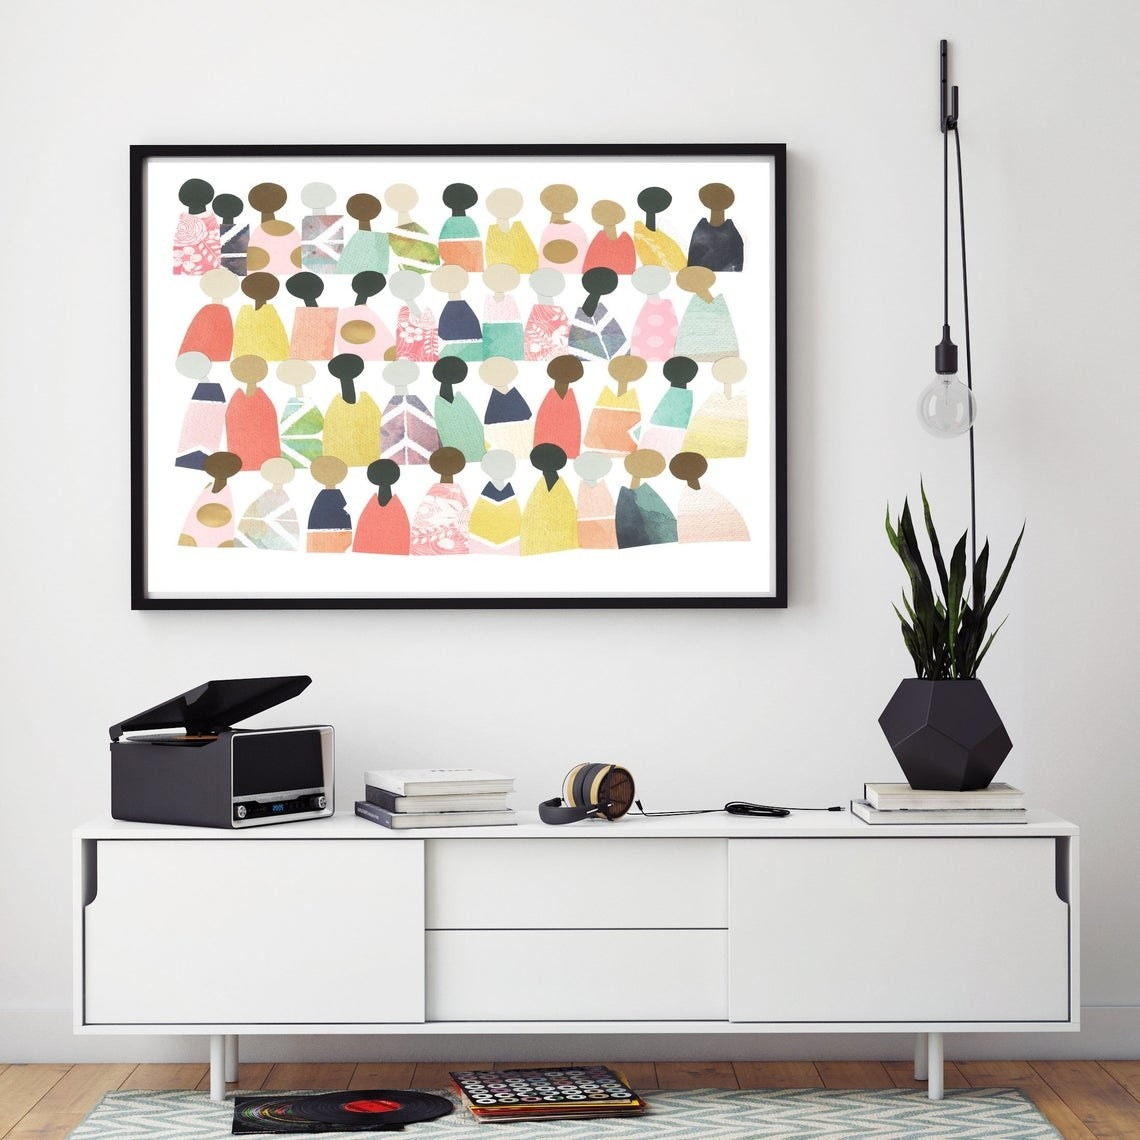 Colorful, minimalist art piece featuring people with different skin tones